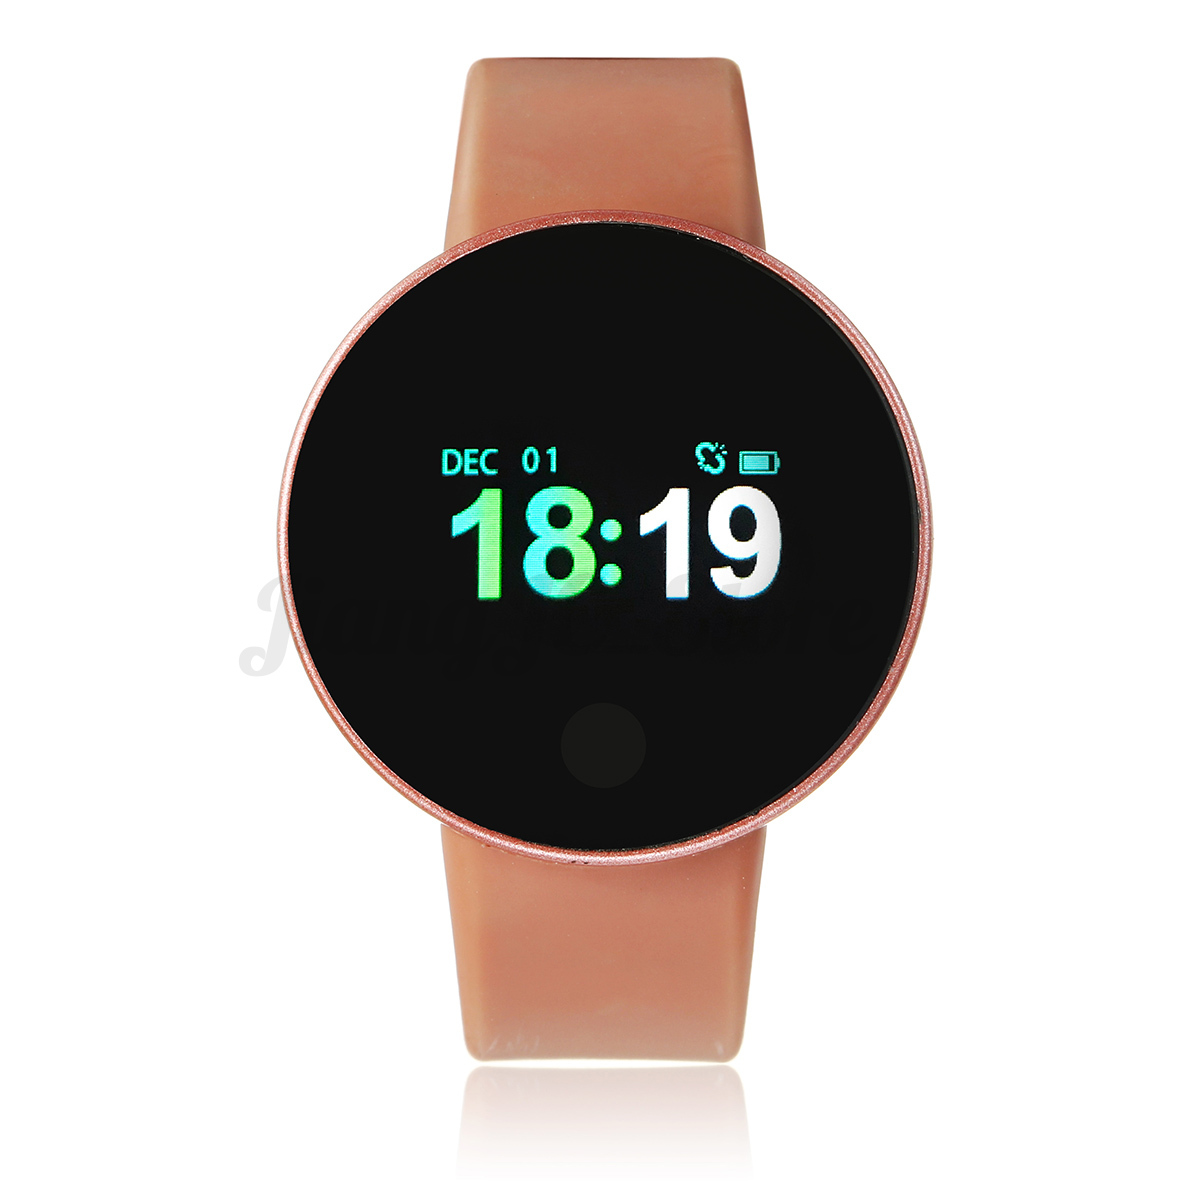 50M-Waterproof-Sports-Smart-Watch-Heart-Rate-Blood-Pressure-Monitor-iOS-Android thumbnail 13